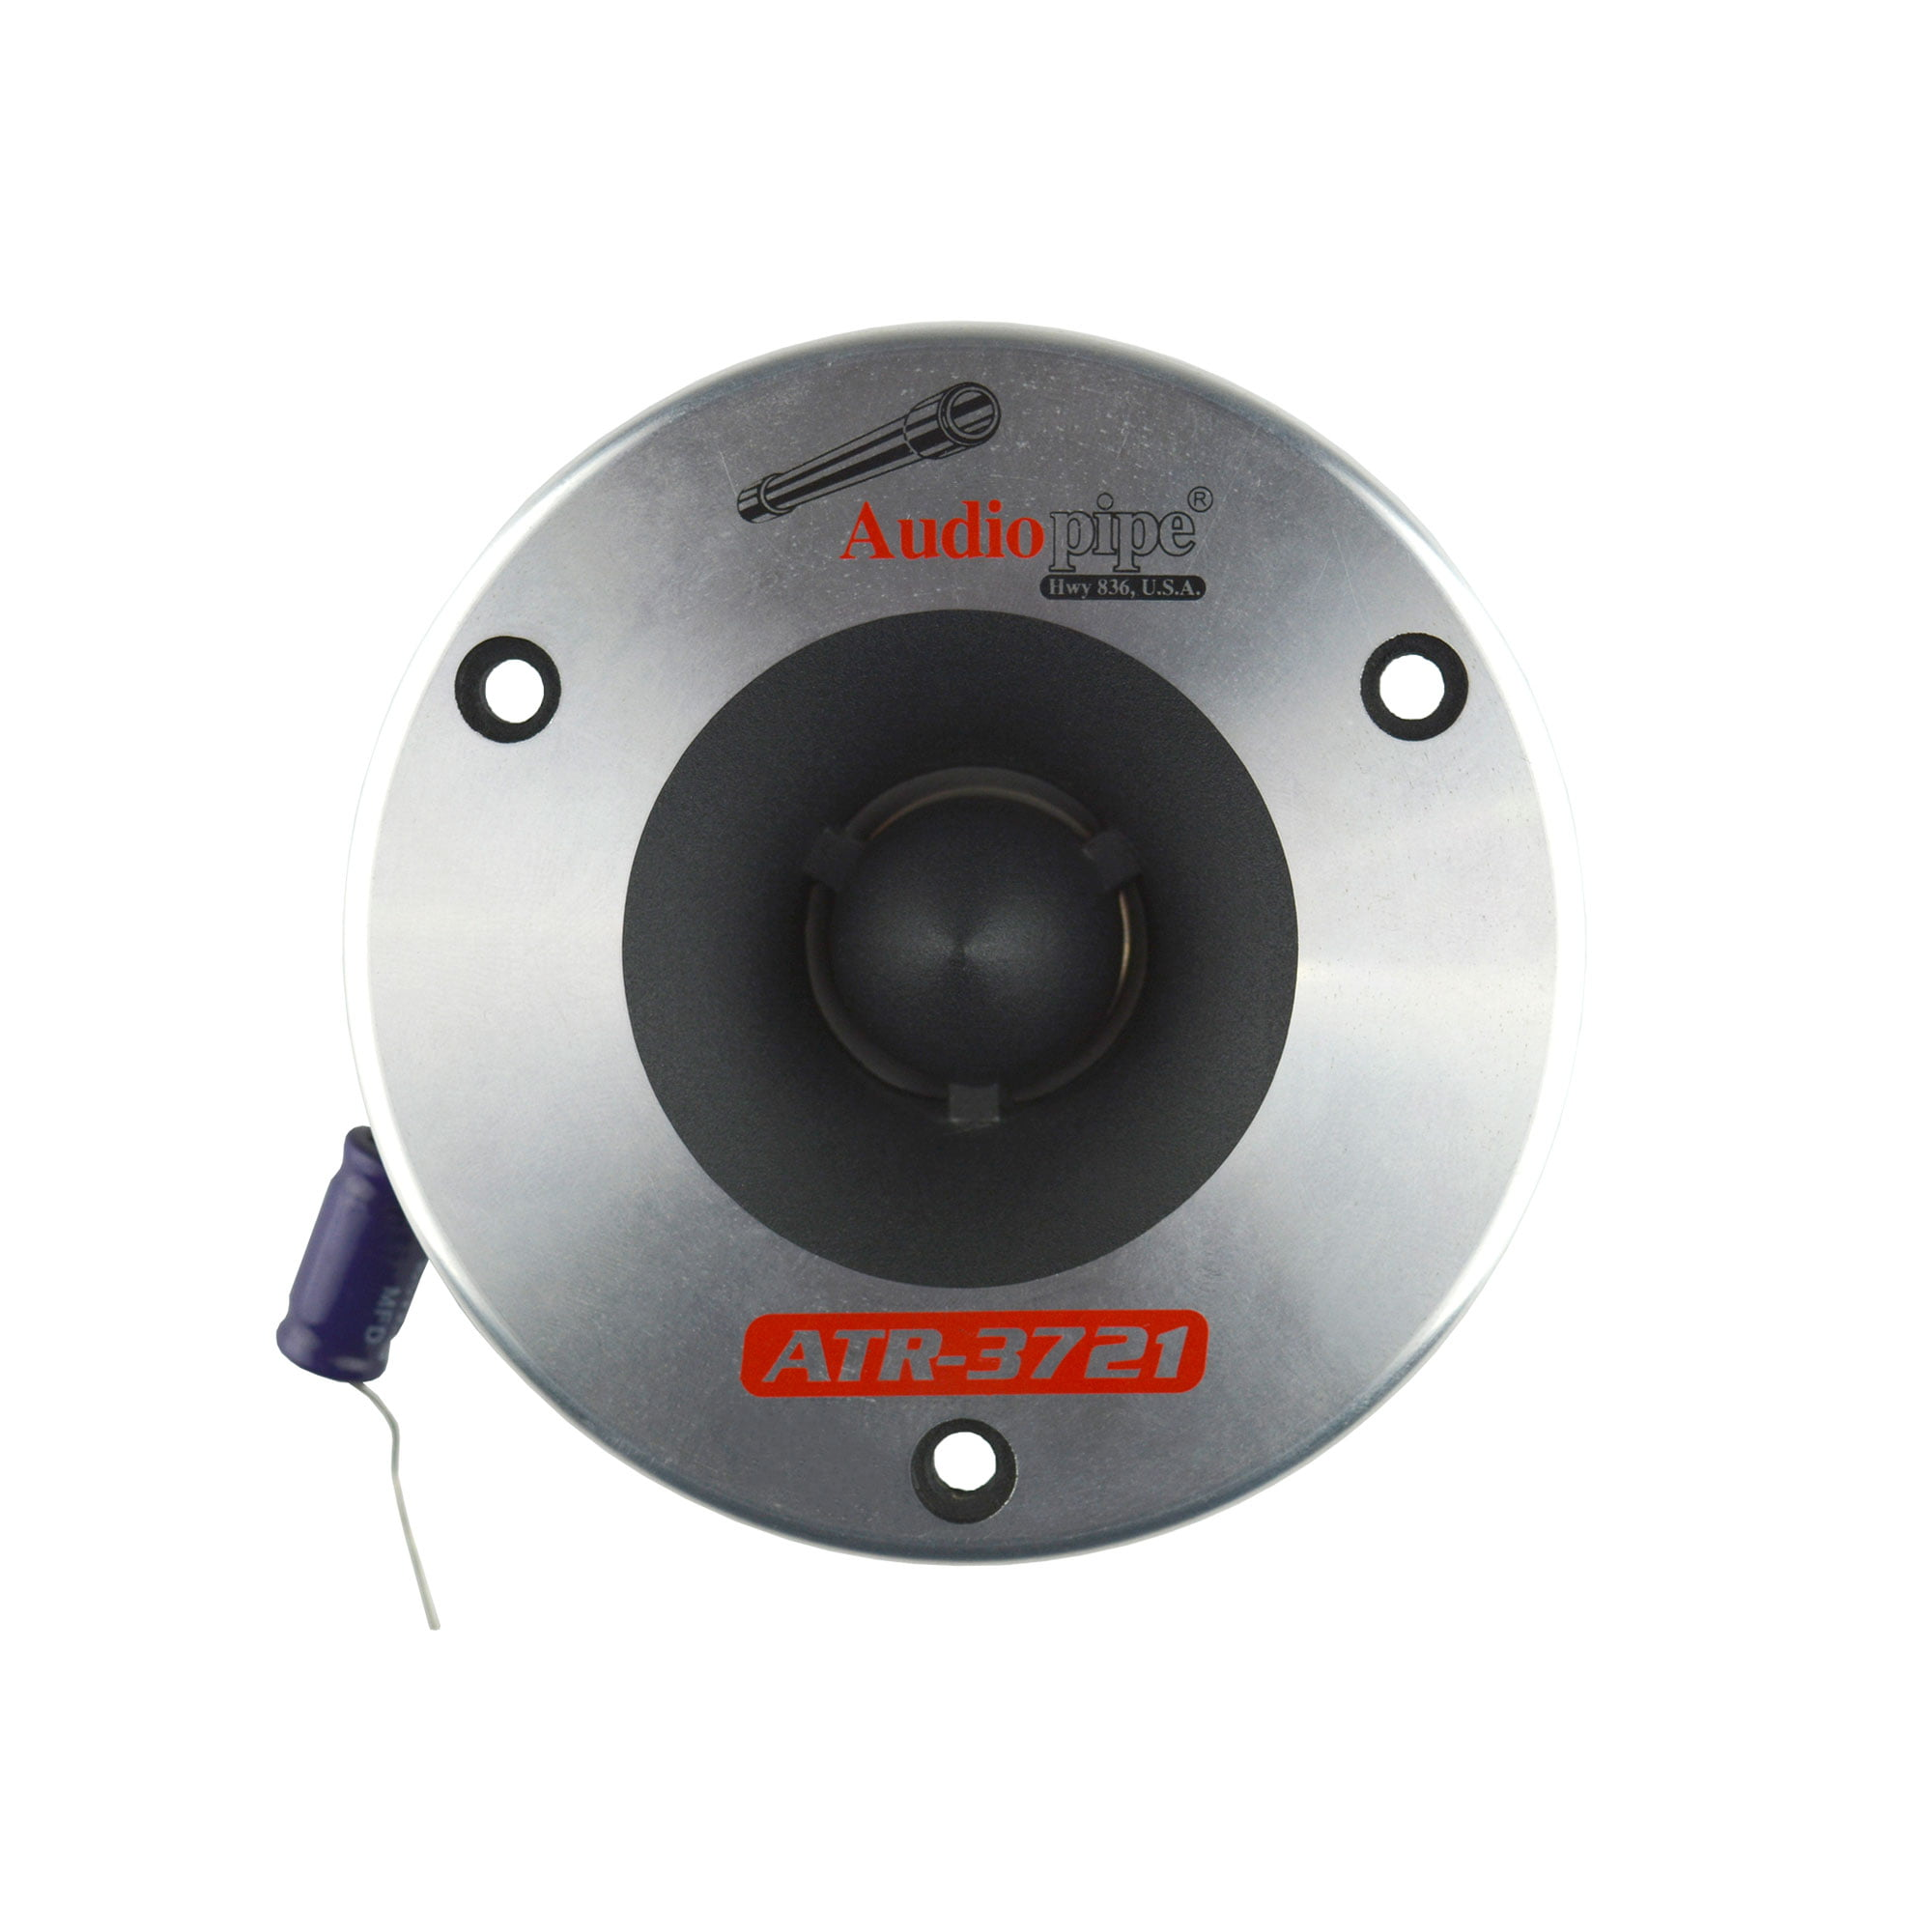 2 Audiopipe ATR-3721 3.75 350W Titanium Super Car Pro Tweeter Audio ATR3731 2 Audiopipe ATR-3721 3.75 350W Titanium Super Car Pro Tweeter Audio ATR3731 ATR3721